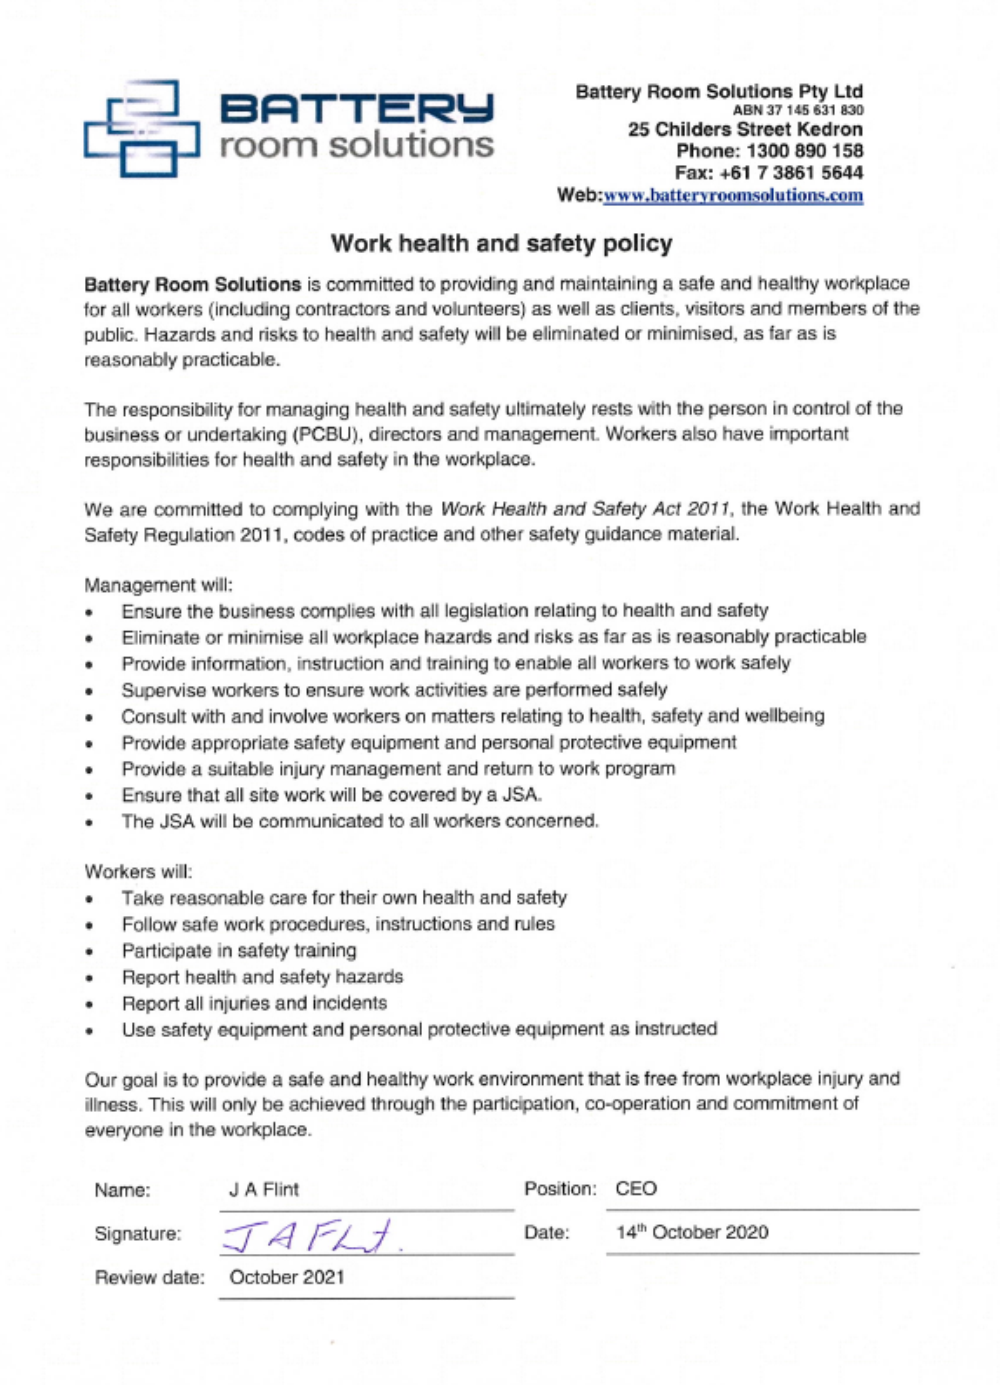 Work Health and Safety Policy 2020